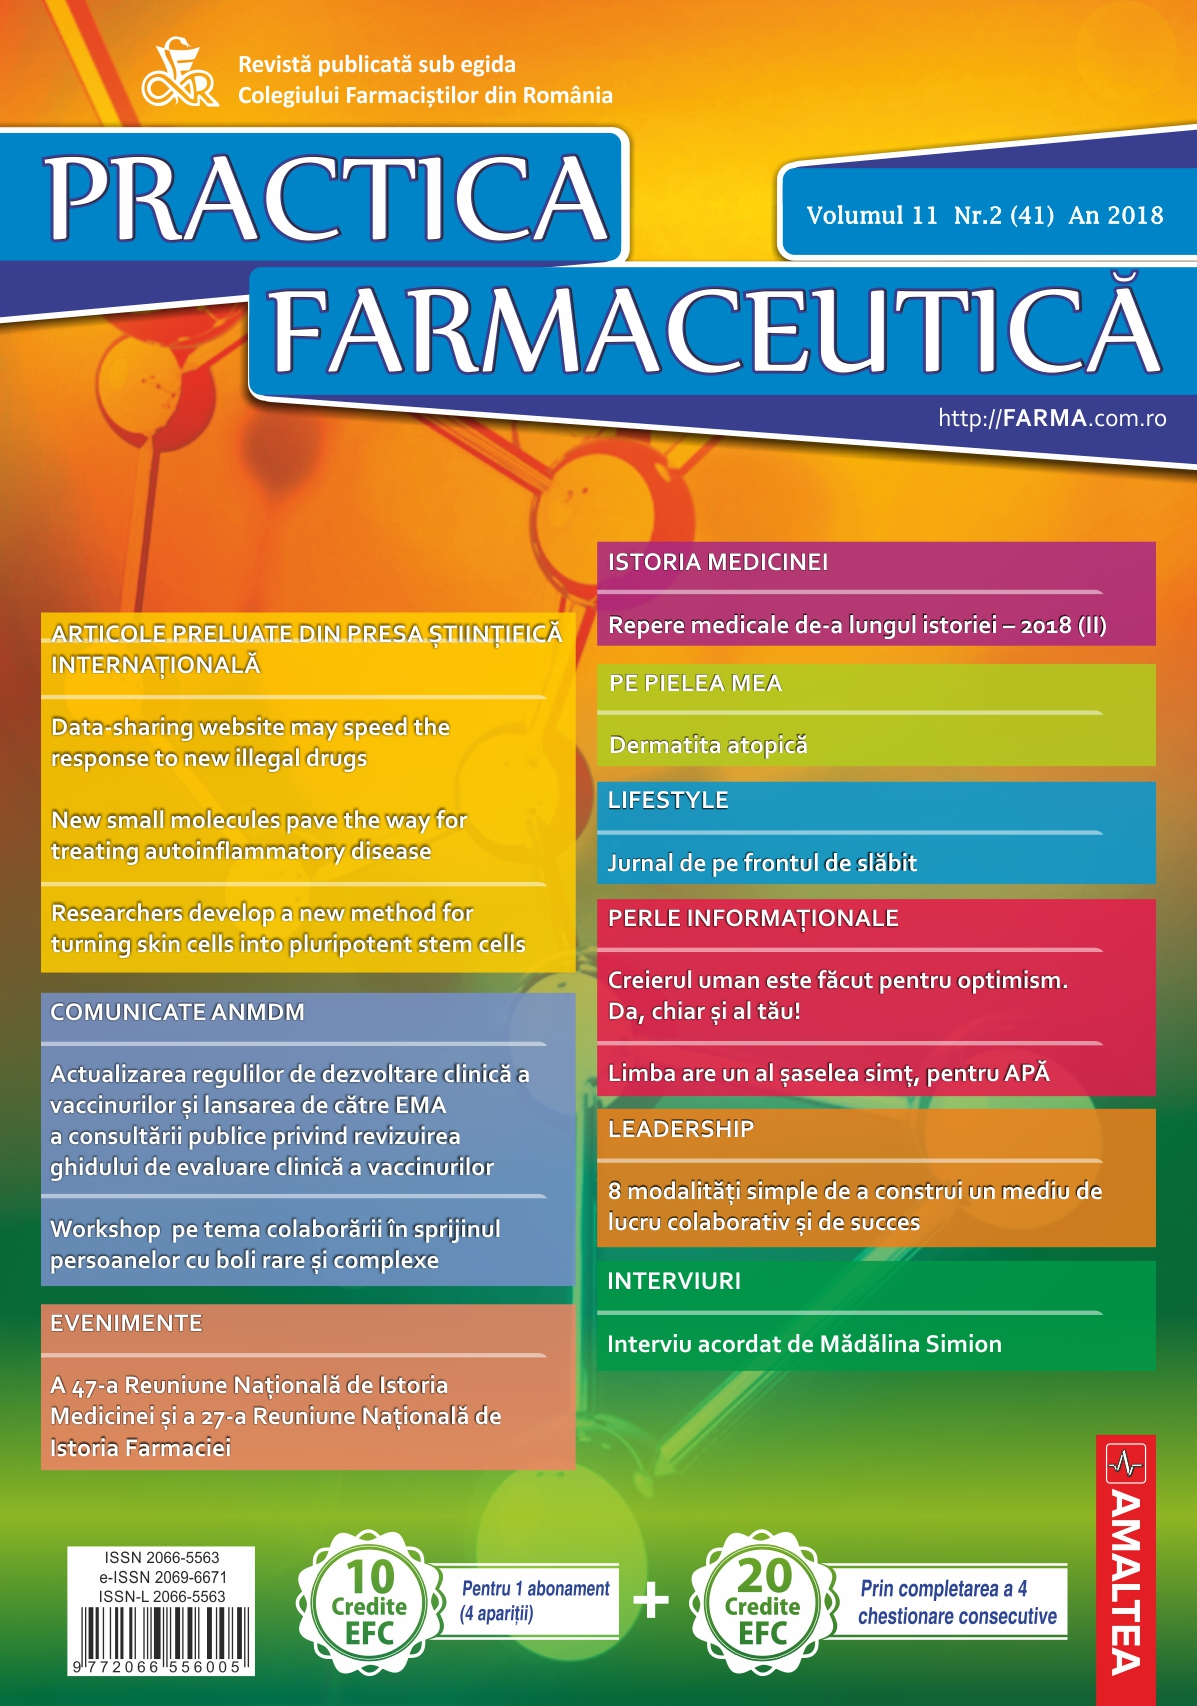 Revista Practica Farmaceutica, Vol. 11, Nr. 2 (41), 2018